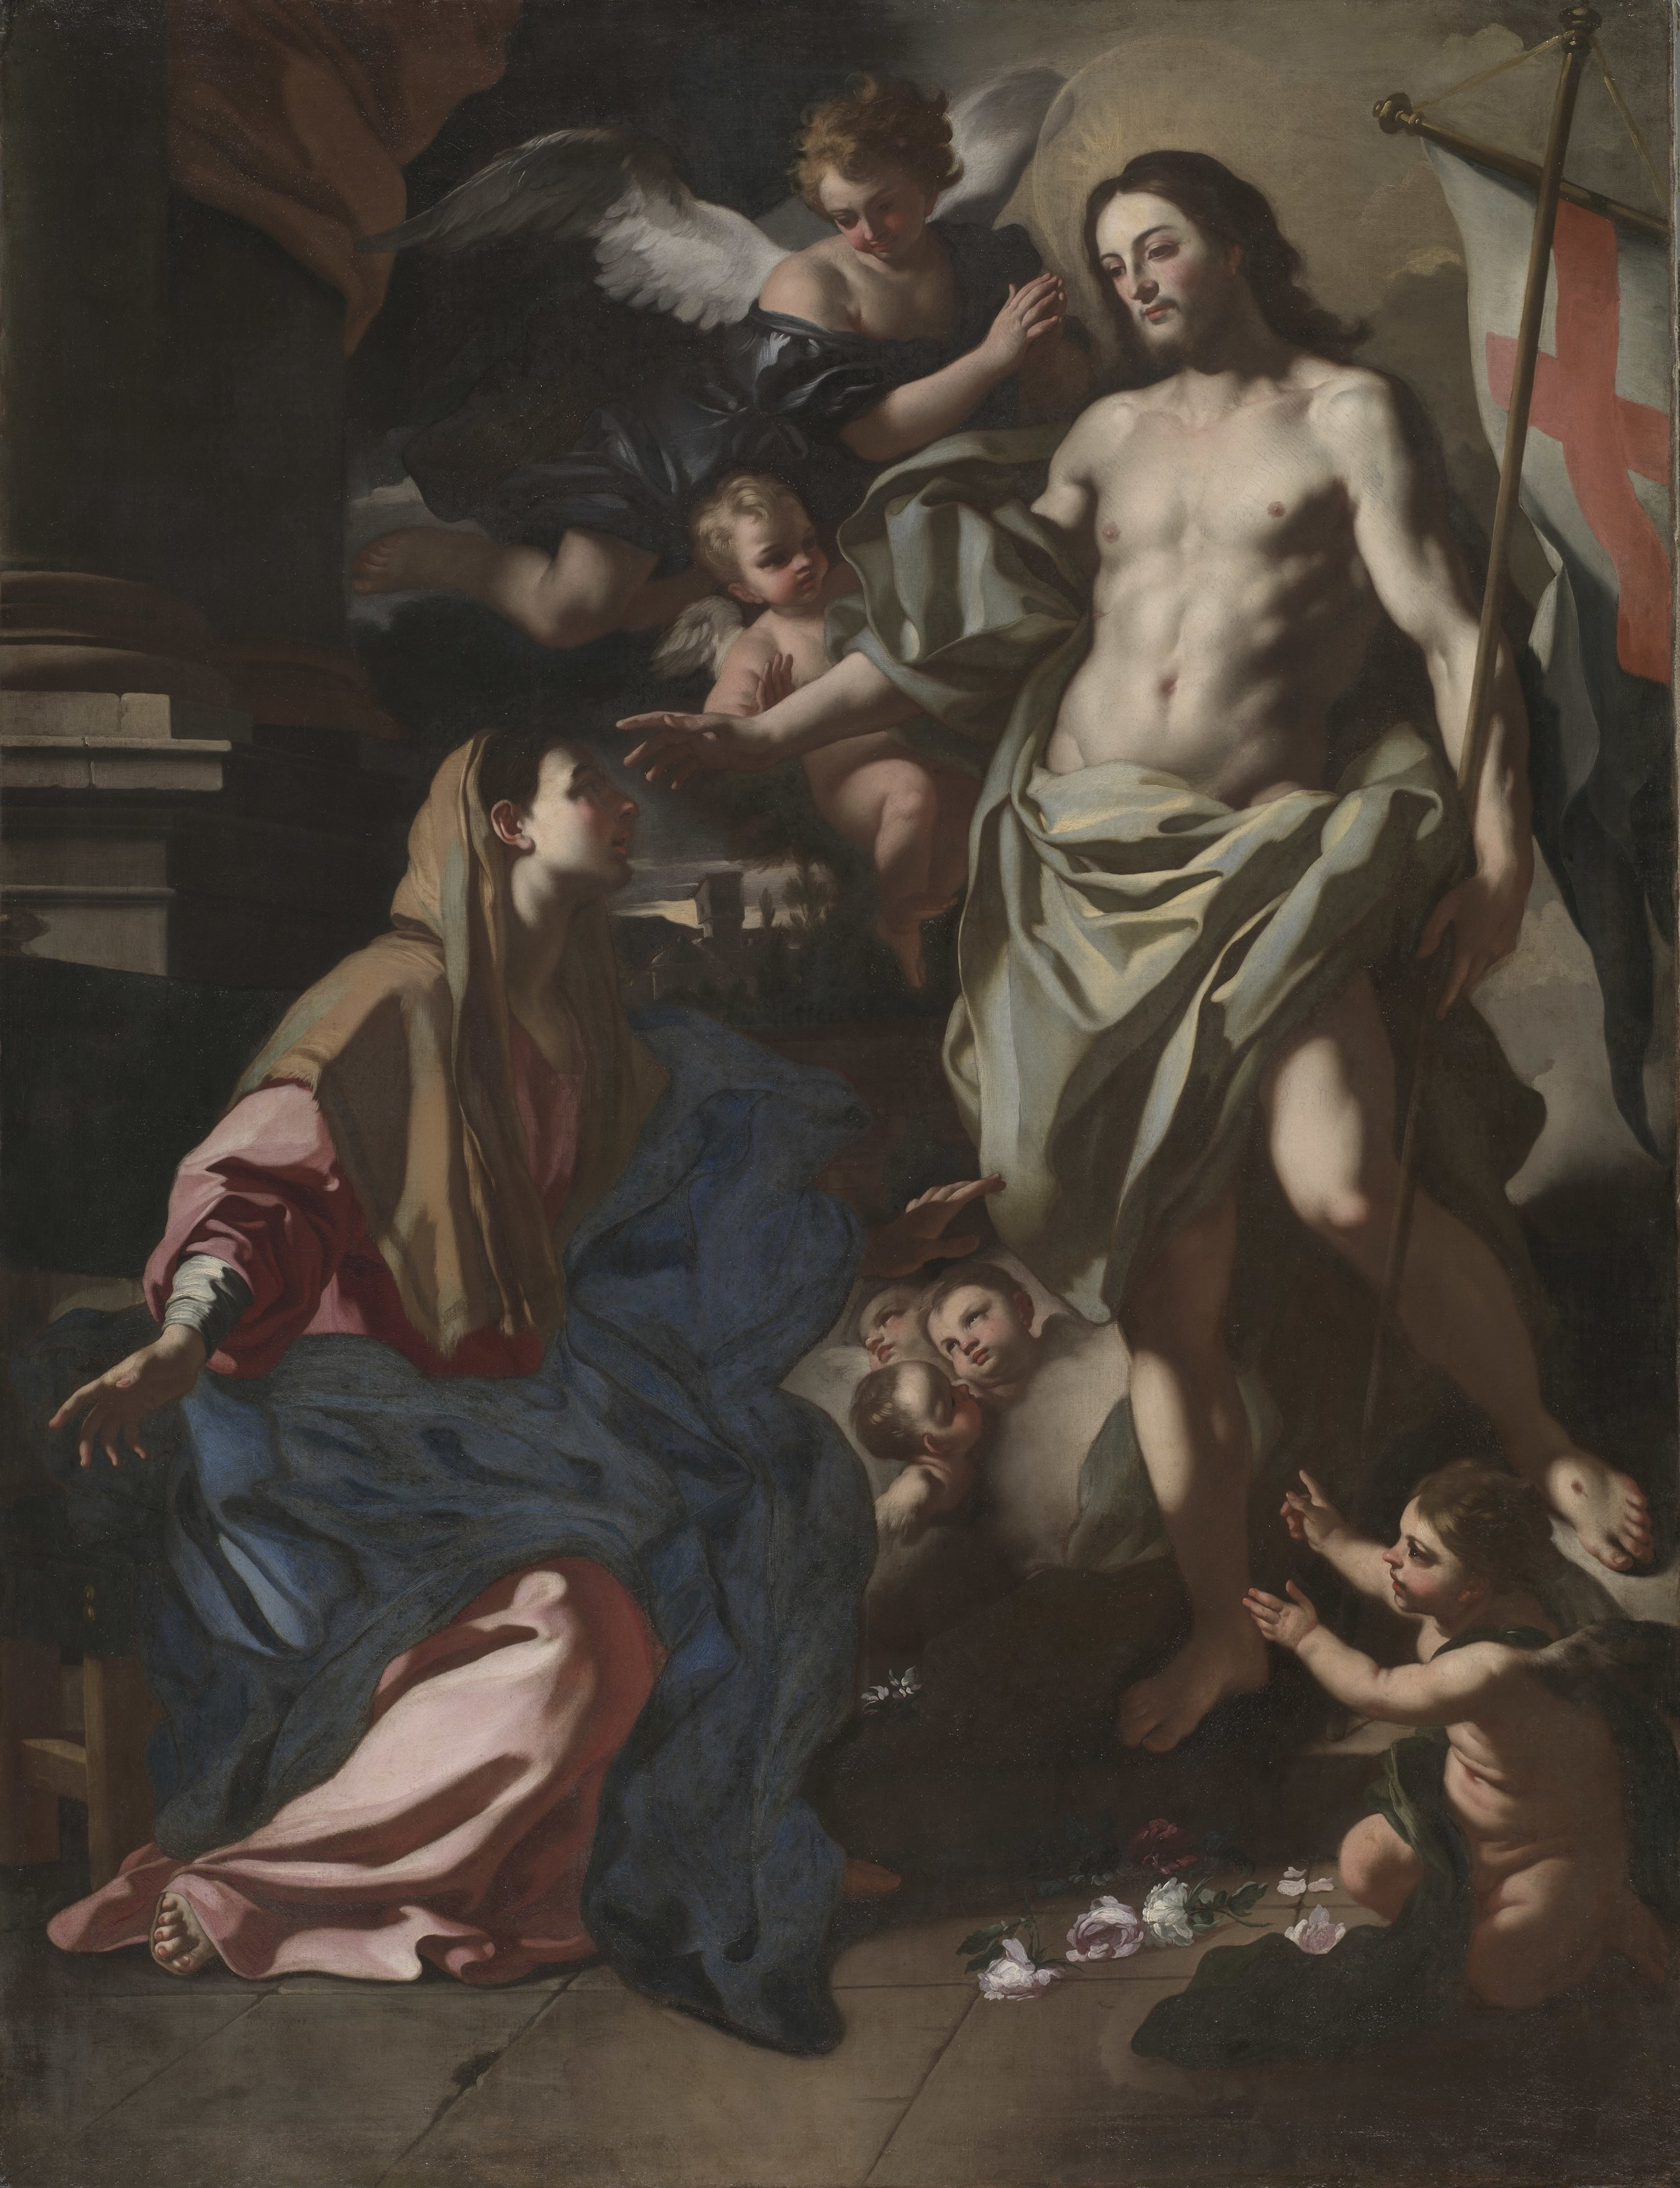 Artist: Francesco Solimena - The Risen Christ Appearing to the Virgin. Circa 1708. This work is in the public domain. This file was donated to Wikimedia Commons as part of a project with the Cleveland Museum of Art. See the  Open Access at the Cleveland Museum of Art .